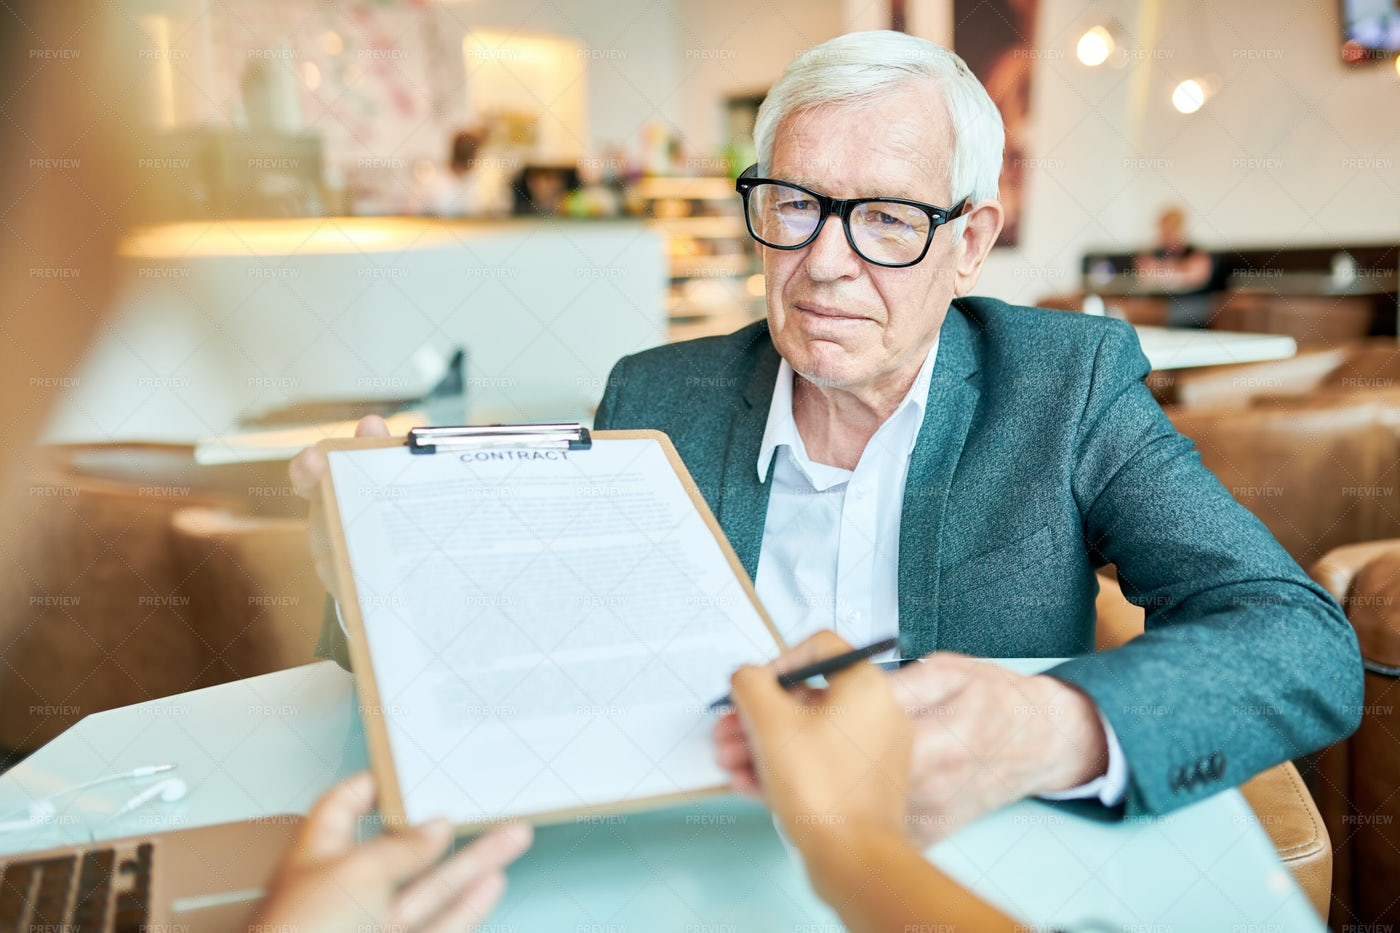 Senior Manager Signing Contract...: Stock Photos